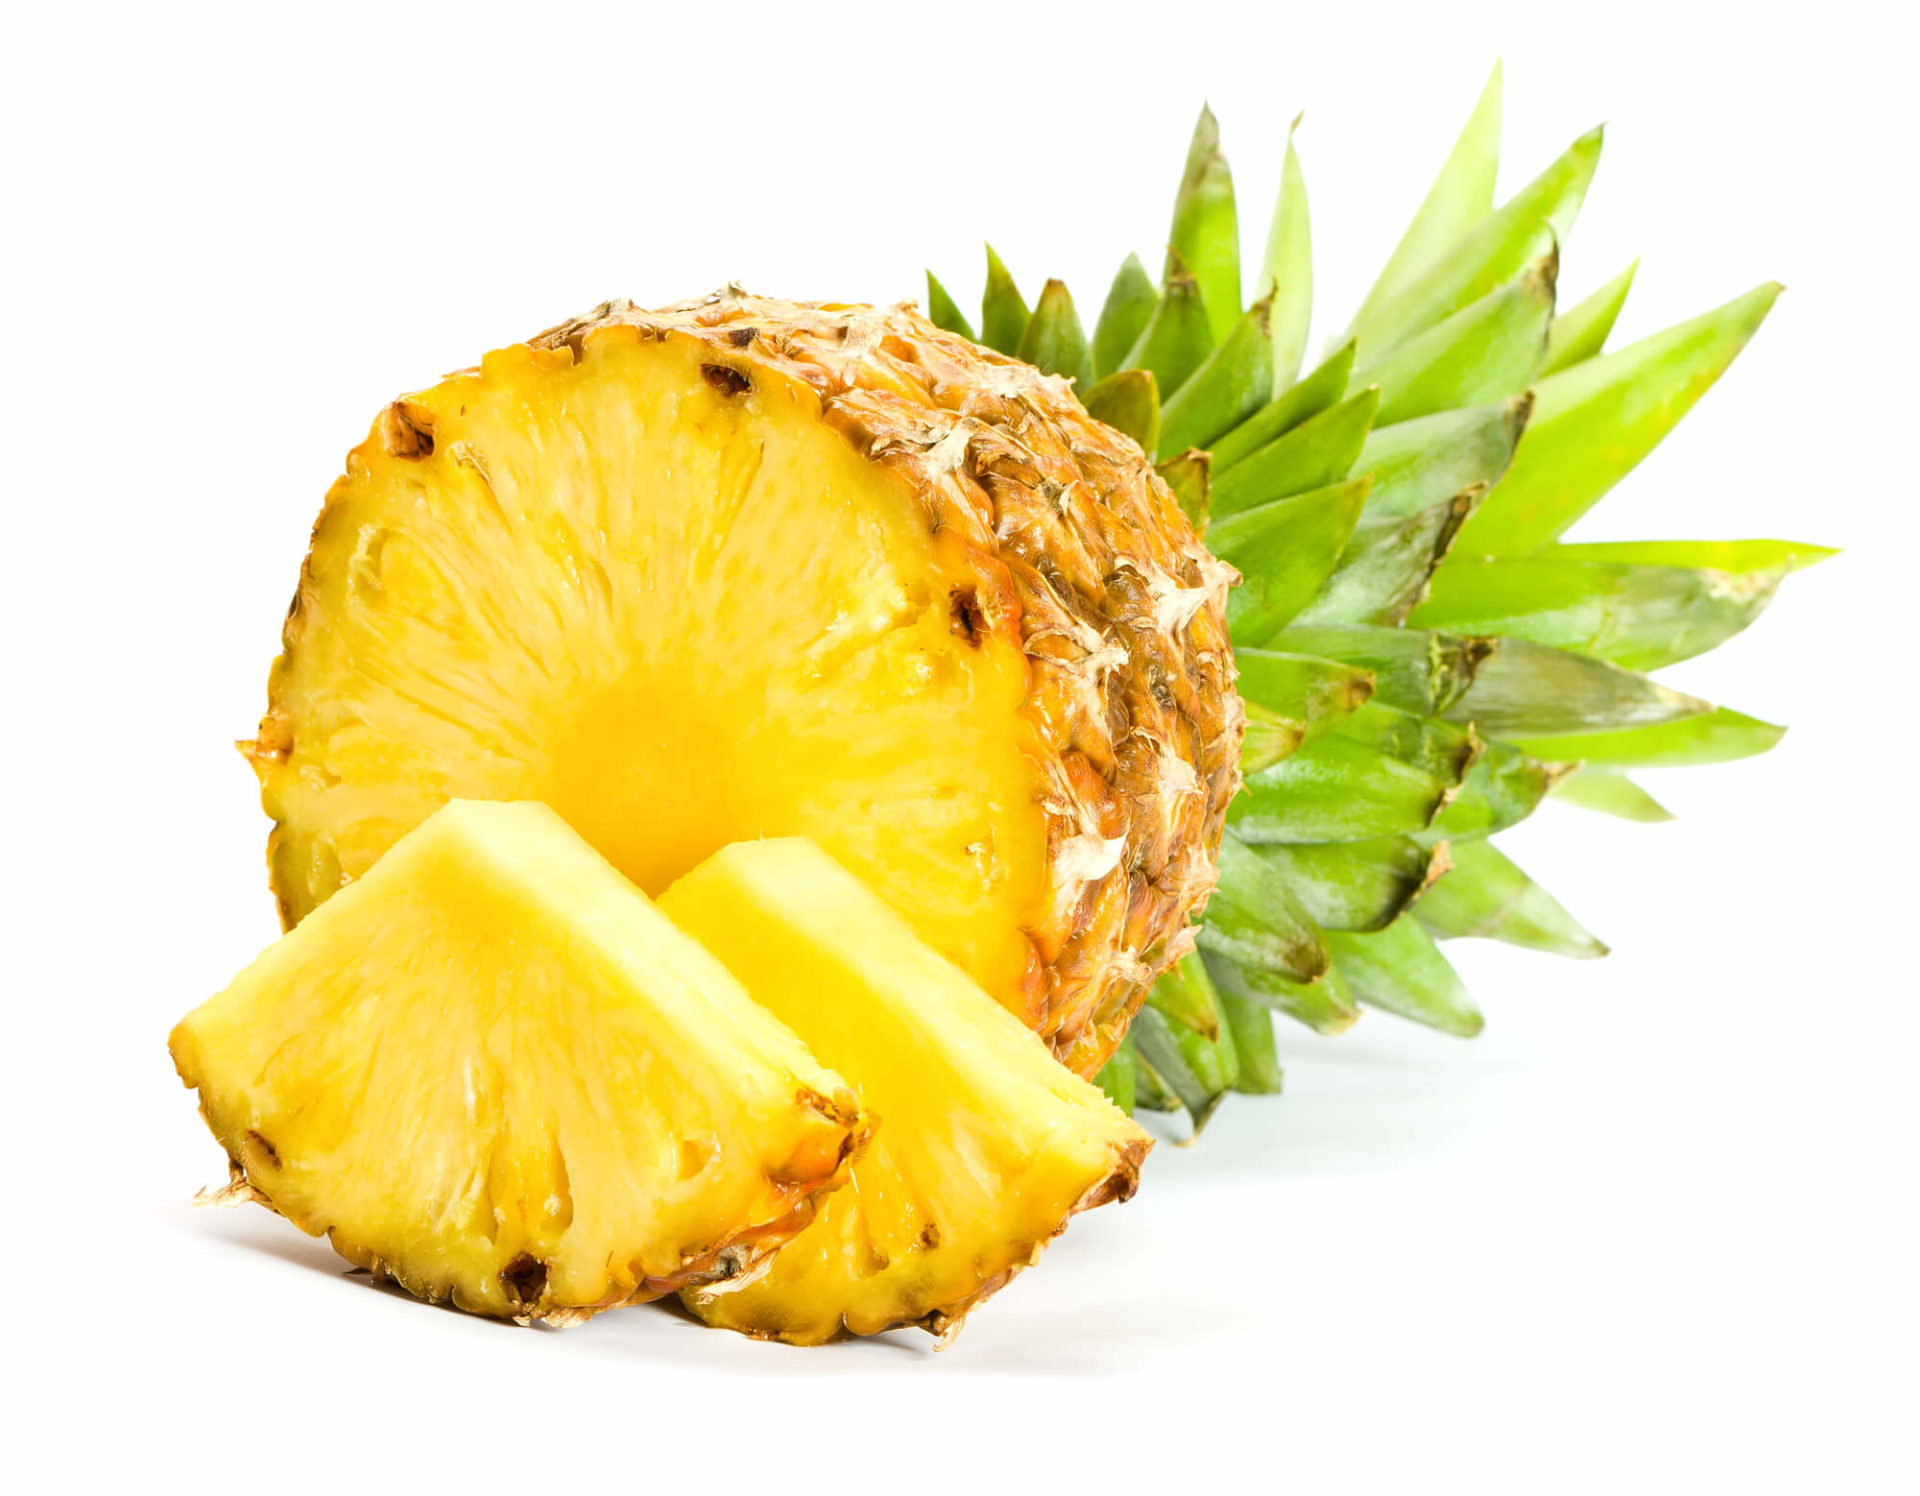 Pineapple: How to Select, Store and Serve